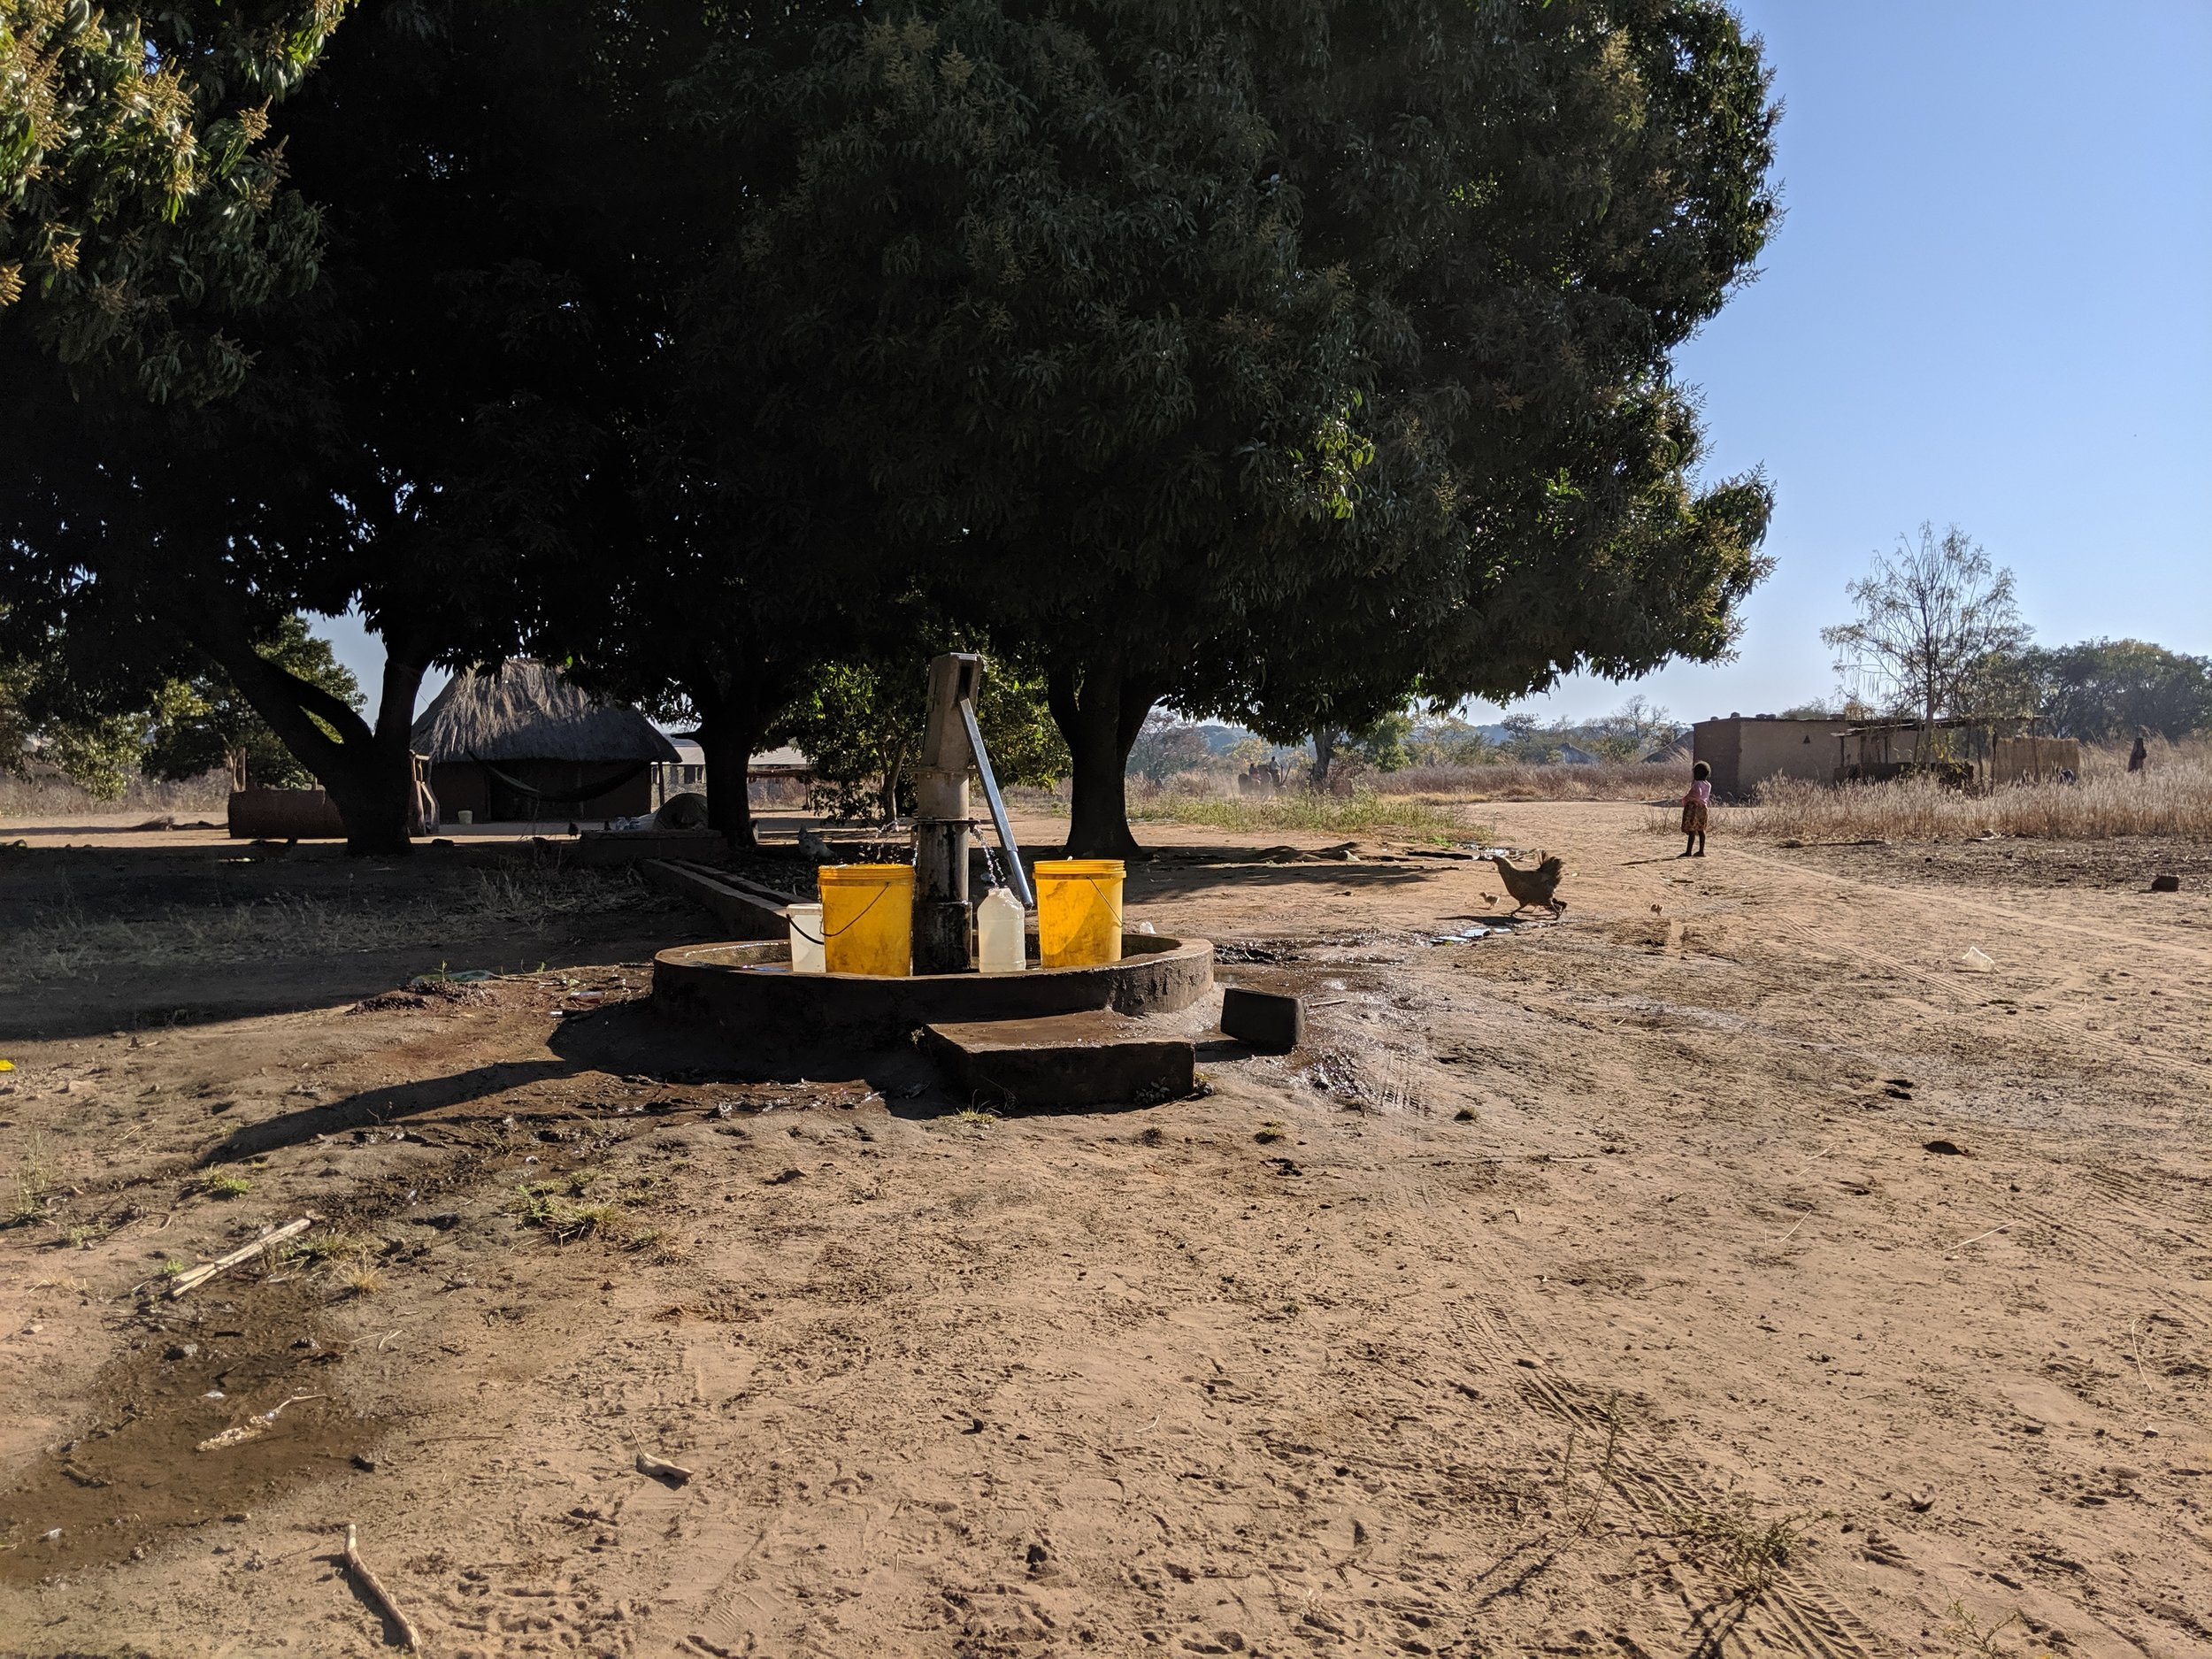 The well/bore hole with hand pump in the center of the village. As the only bore hole within a 1 km radius, many neighboring villages come to use this as well.